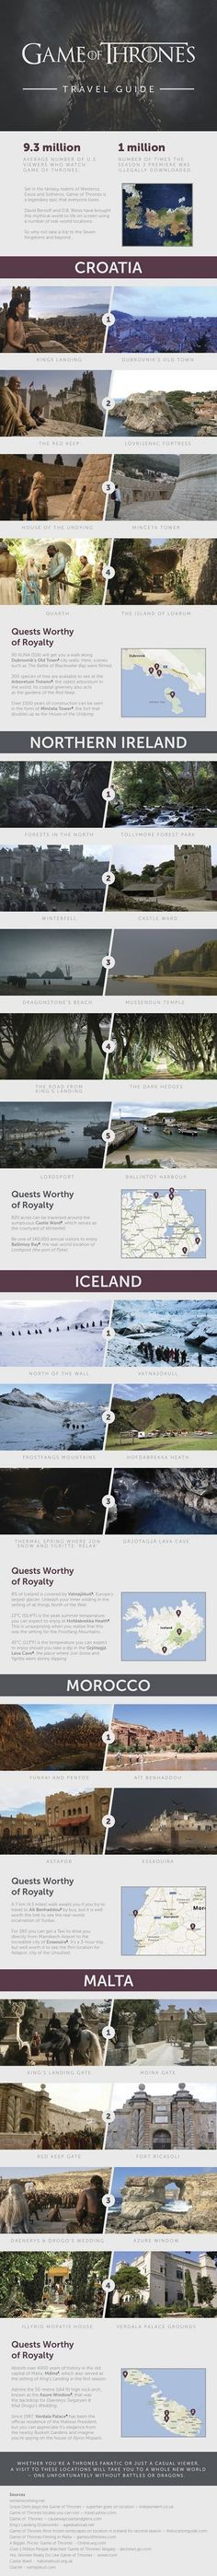 The Game of Thrones Travel Guide: Vacation is Coming// All the places they film-Croatia, Northern Island, Iceland, Malta. HOW DO I PICK?